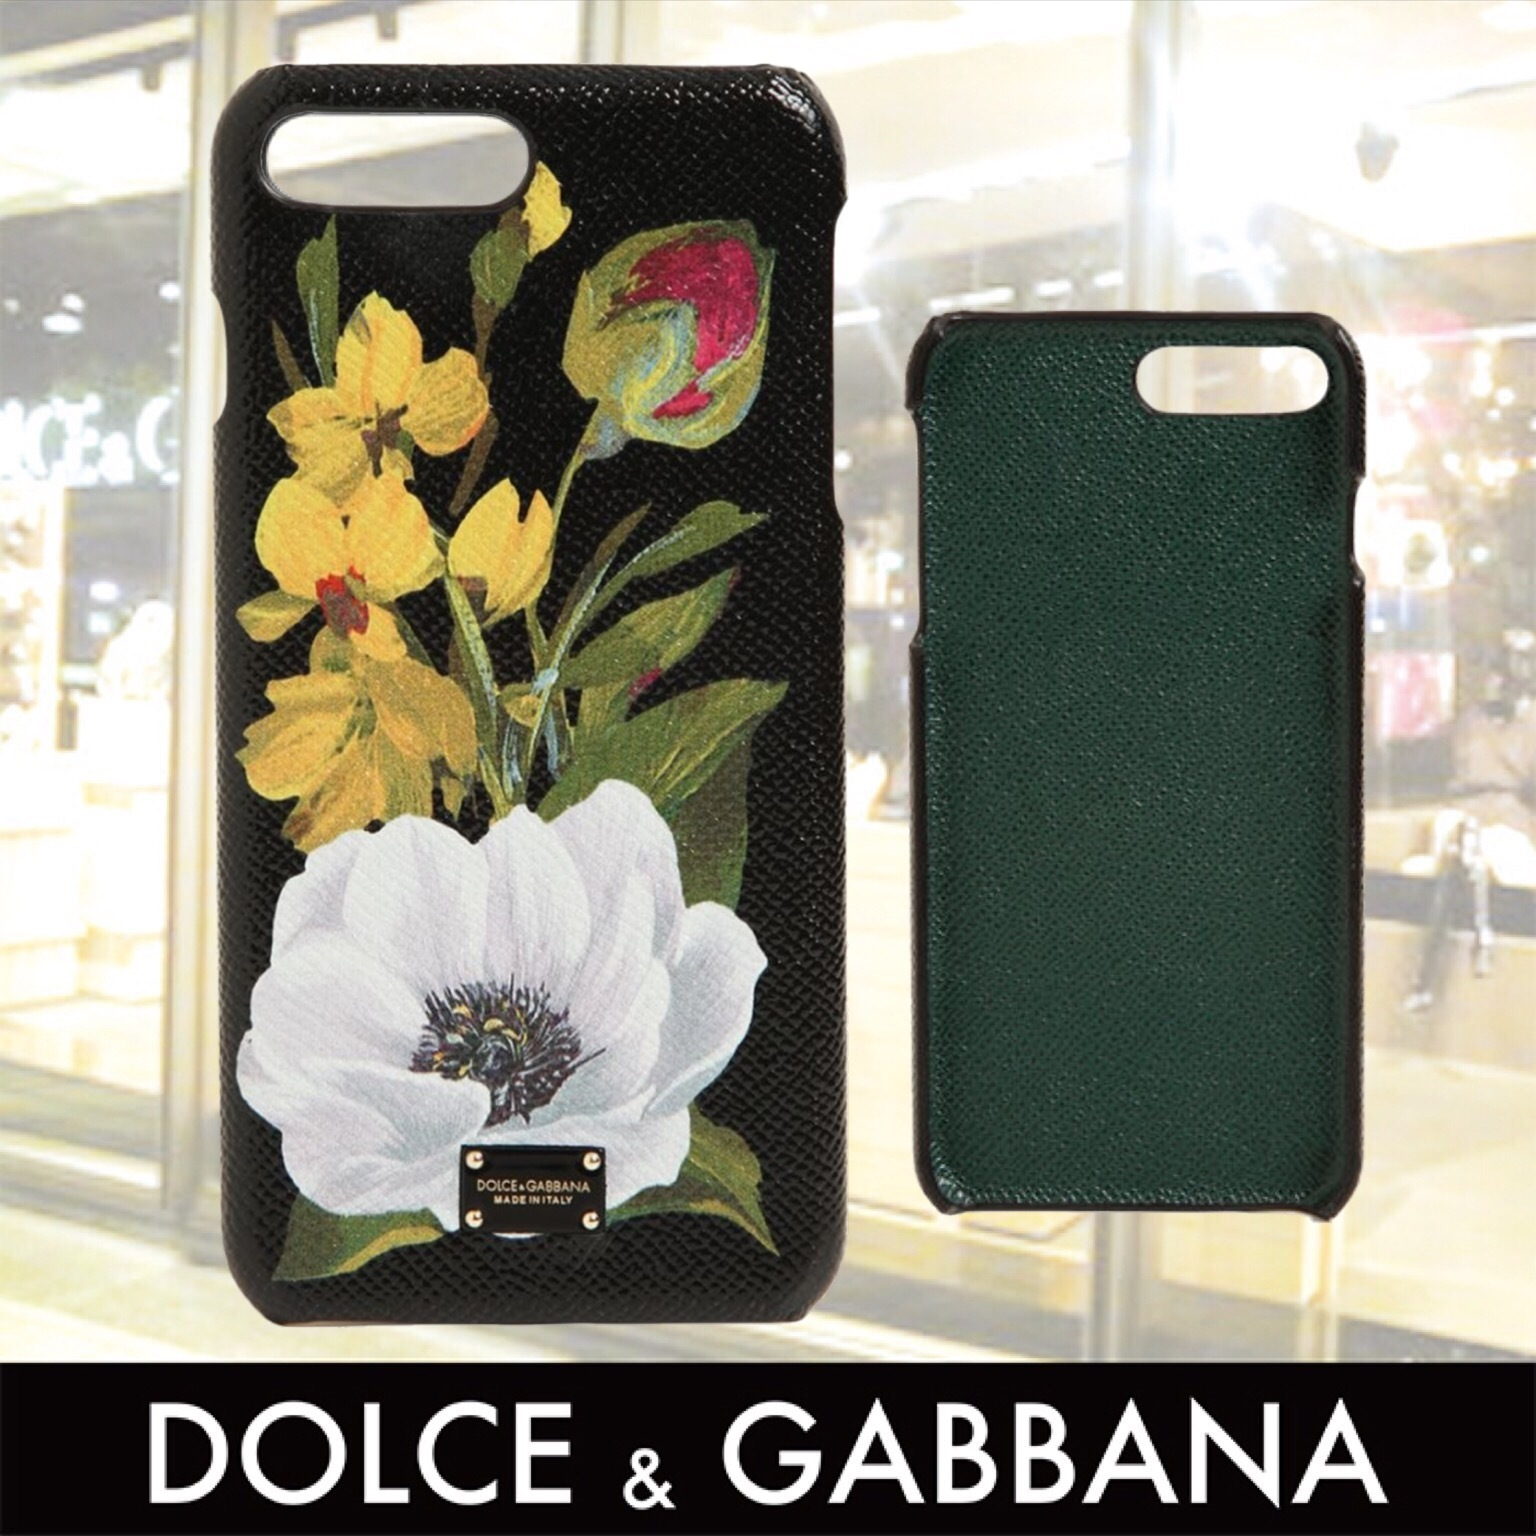 DOLCE&GABBANA Flower Print iPhone7 Plus Case 関税送料込